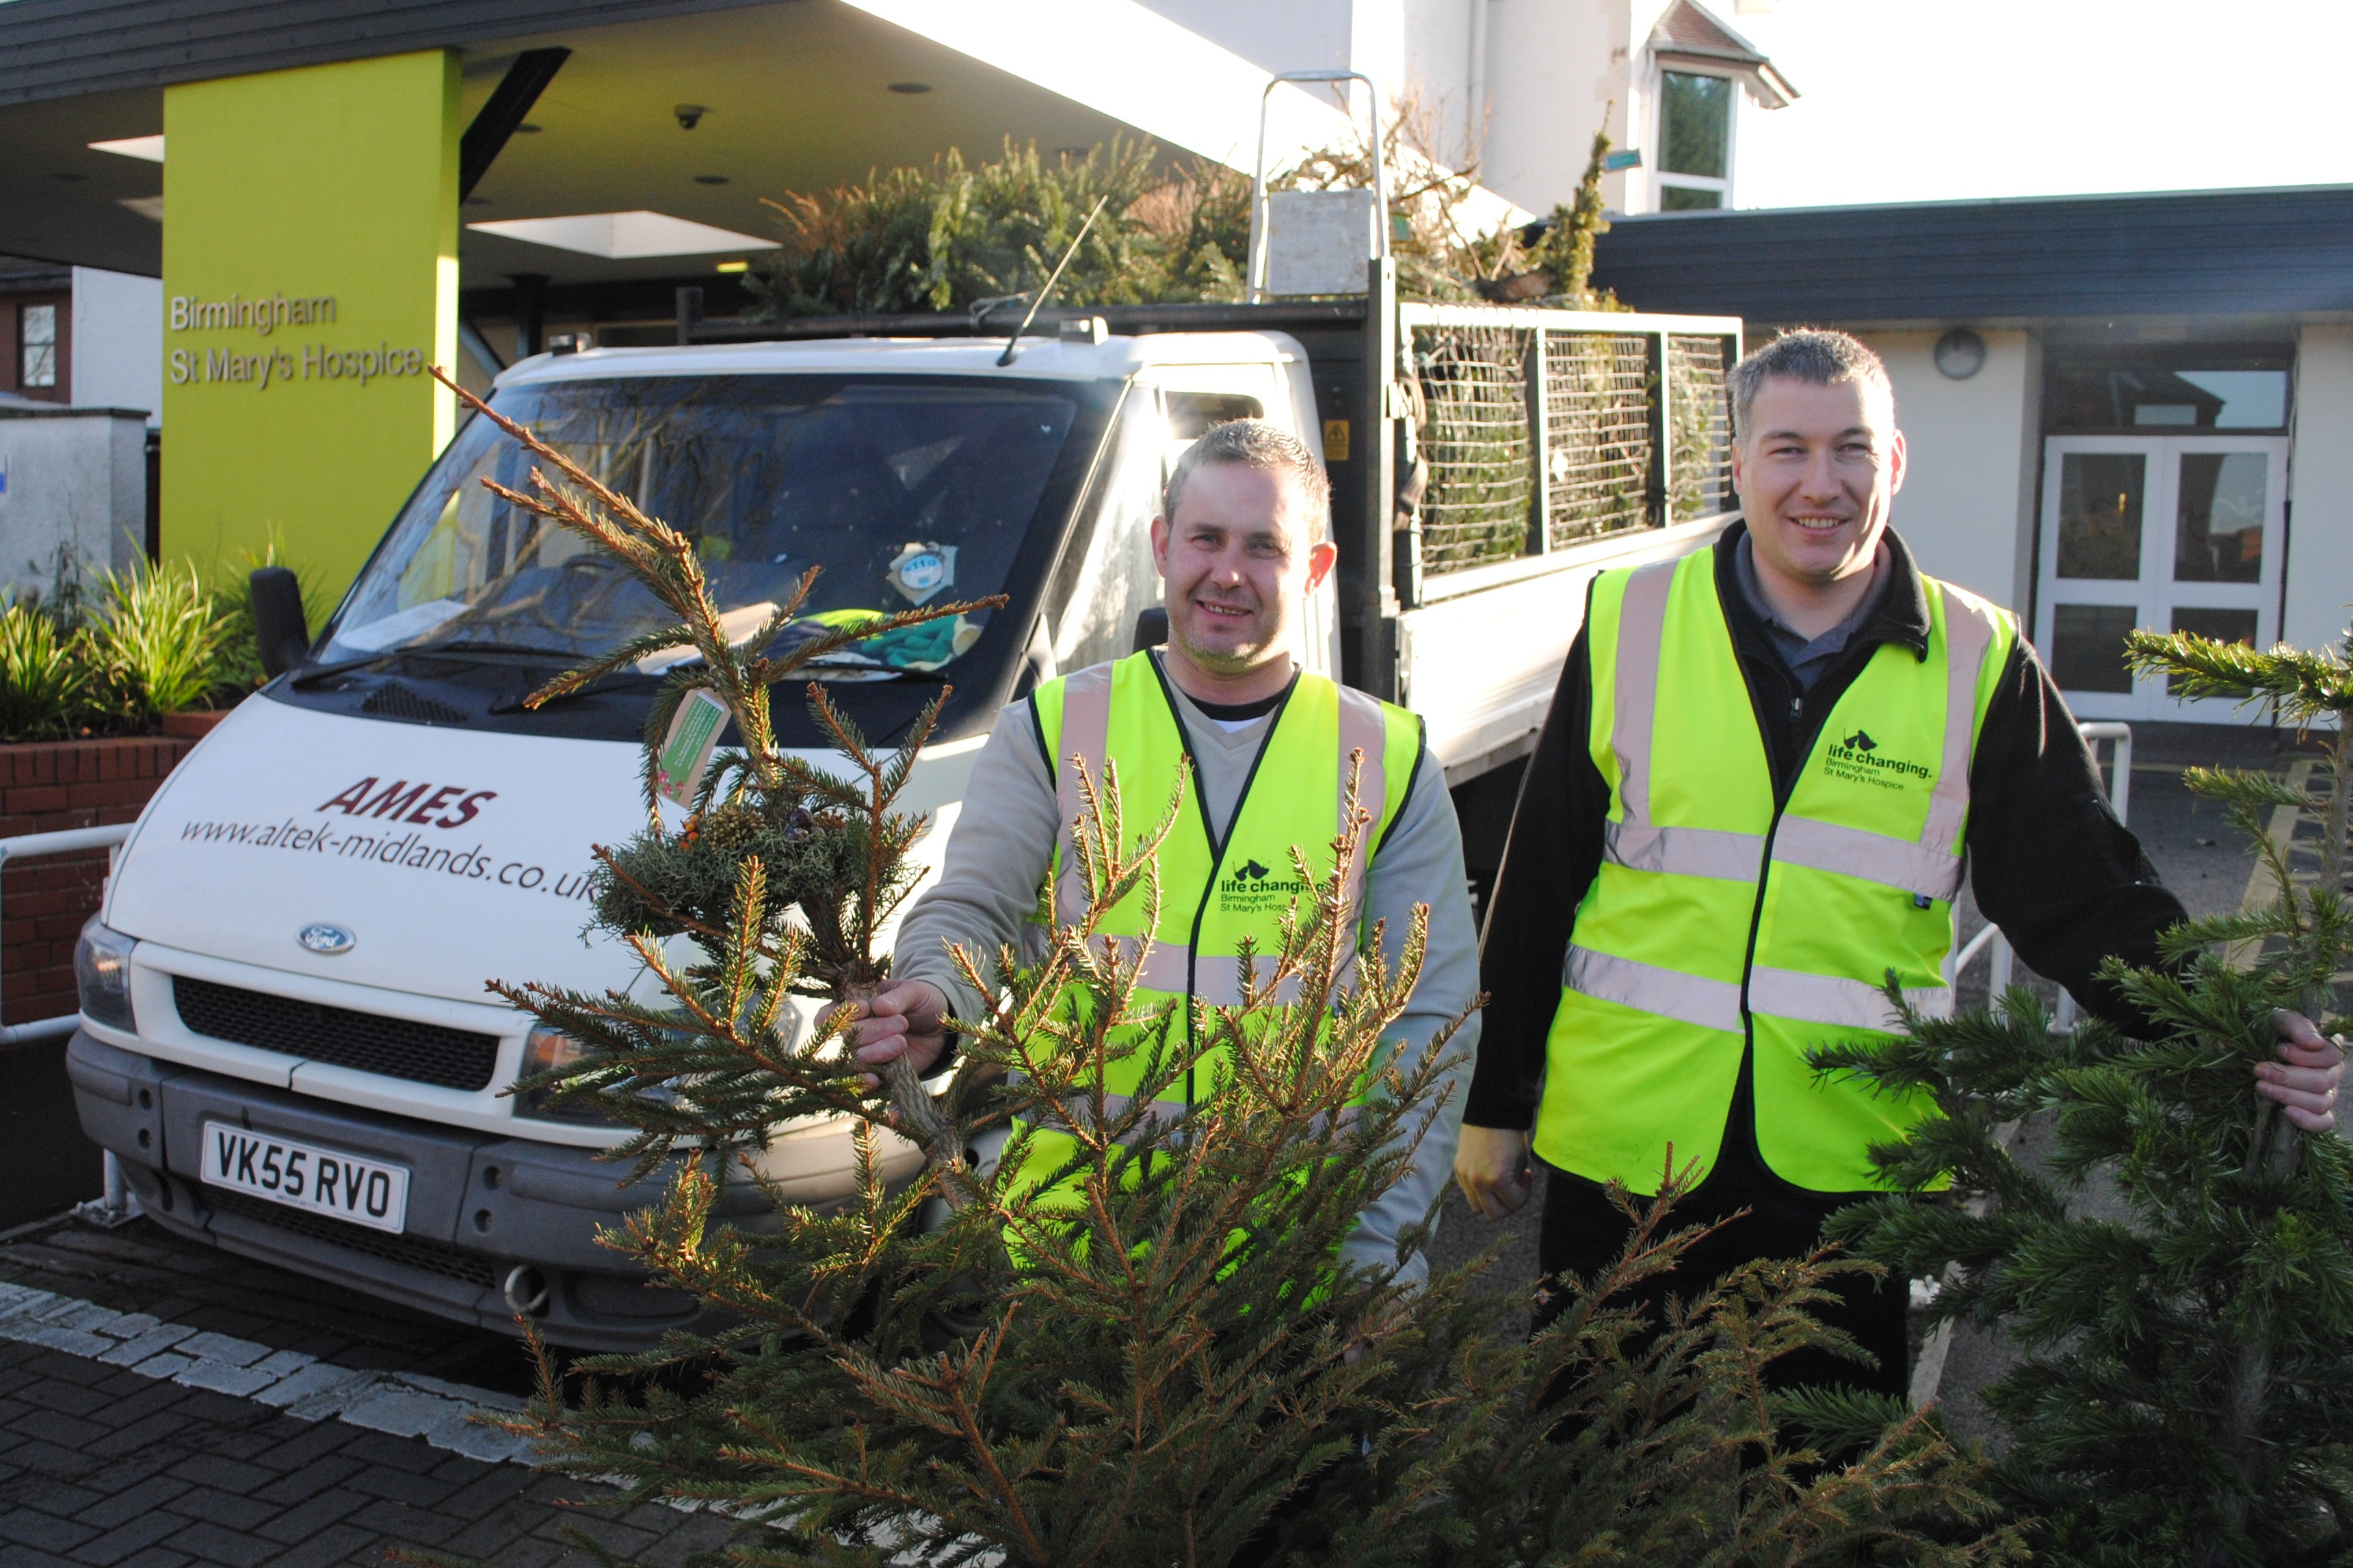 Recycling Christmas trees with St Mary's Hospice in Birmingham